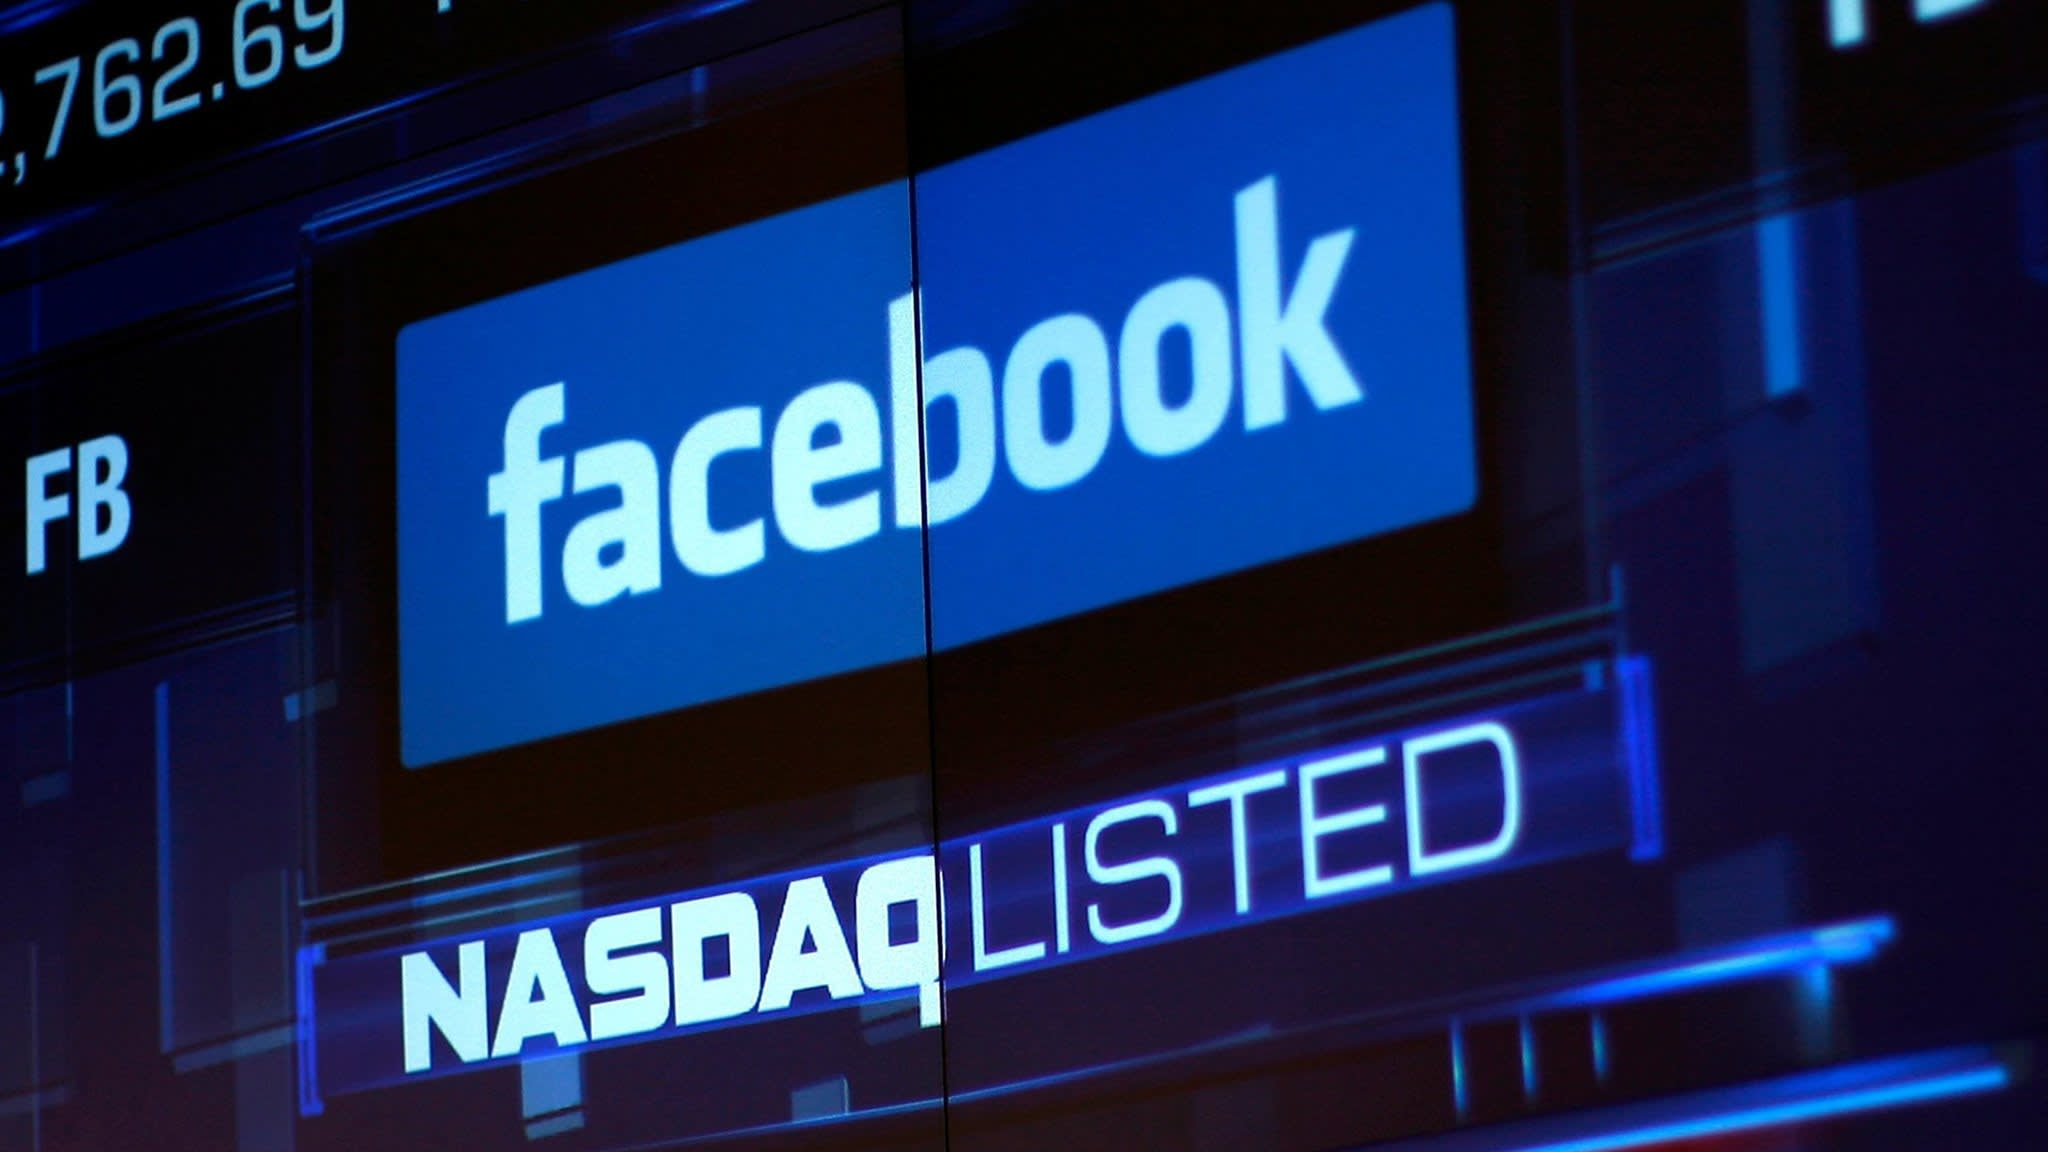 Facebook's growing pains give shareholders $140bn headache